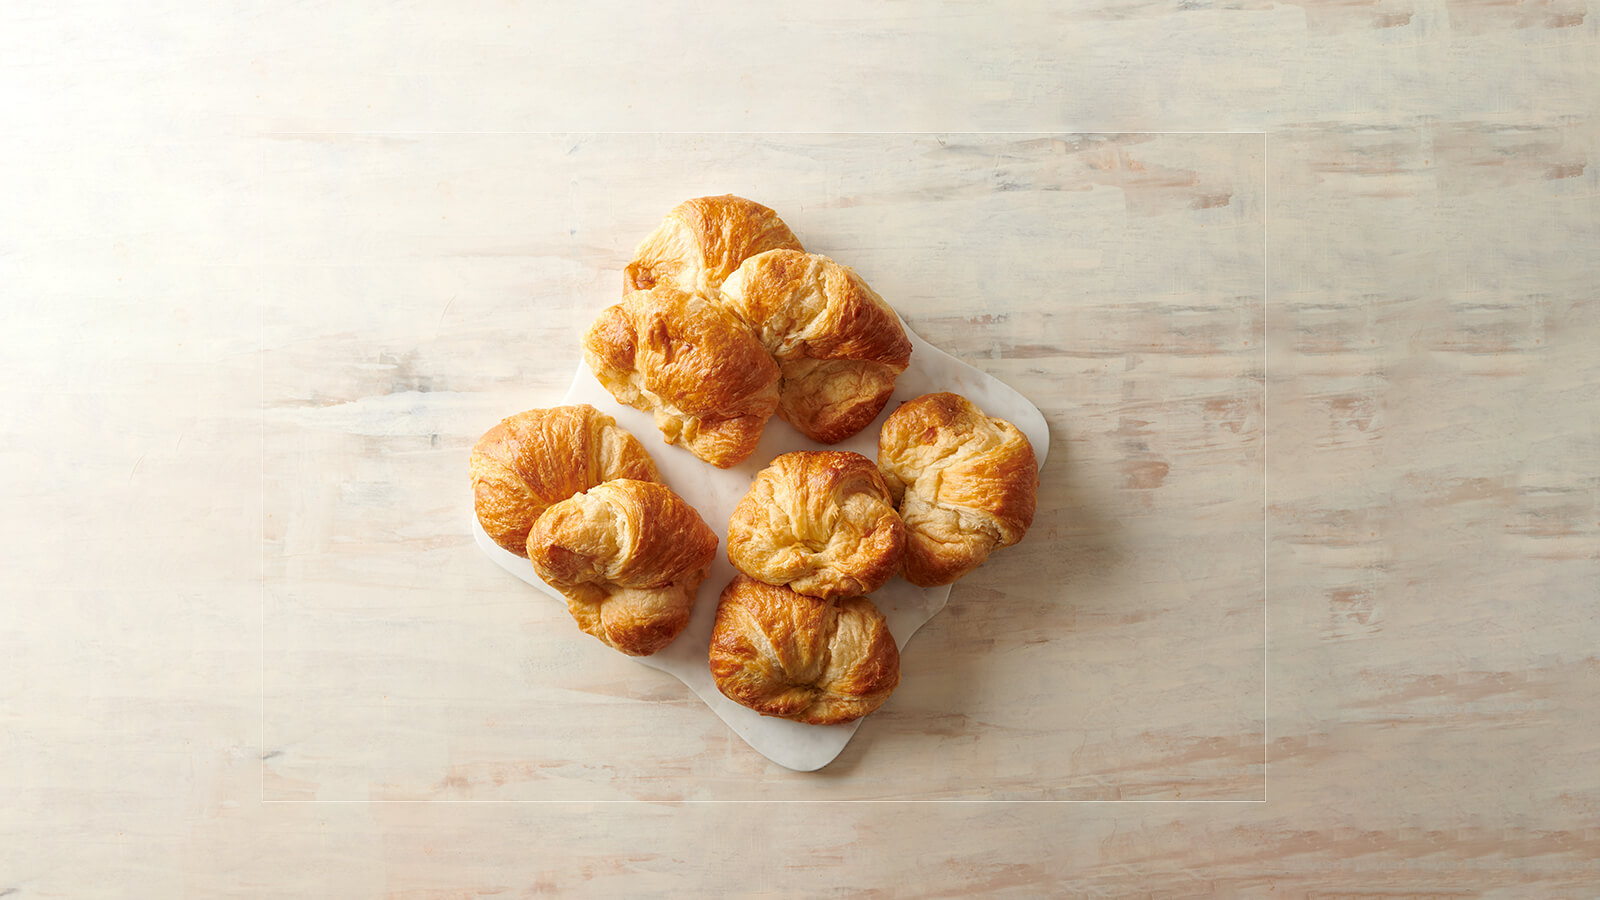 Family Pack Croissants, 8 ct